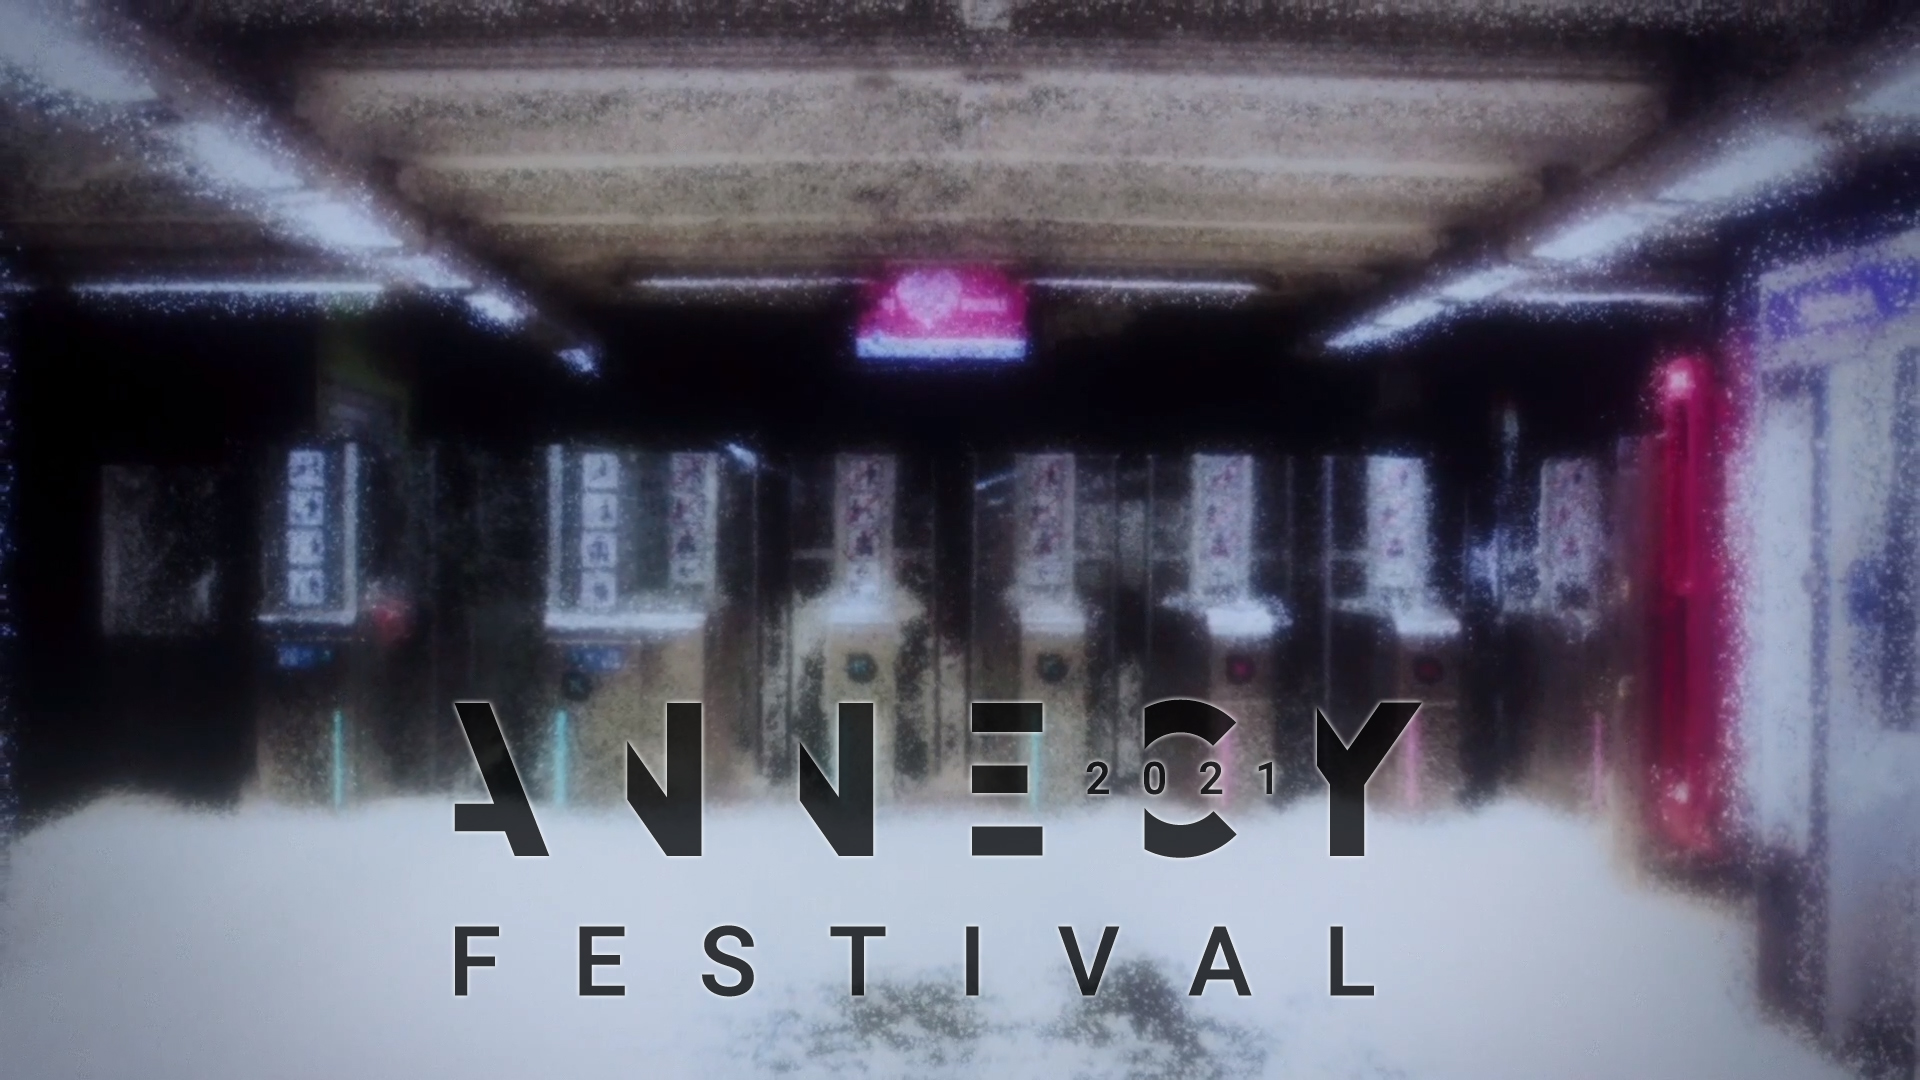 [Annecy Festival] 2021 — Off-Limits Short Films Selection